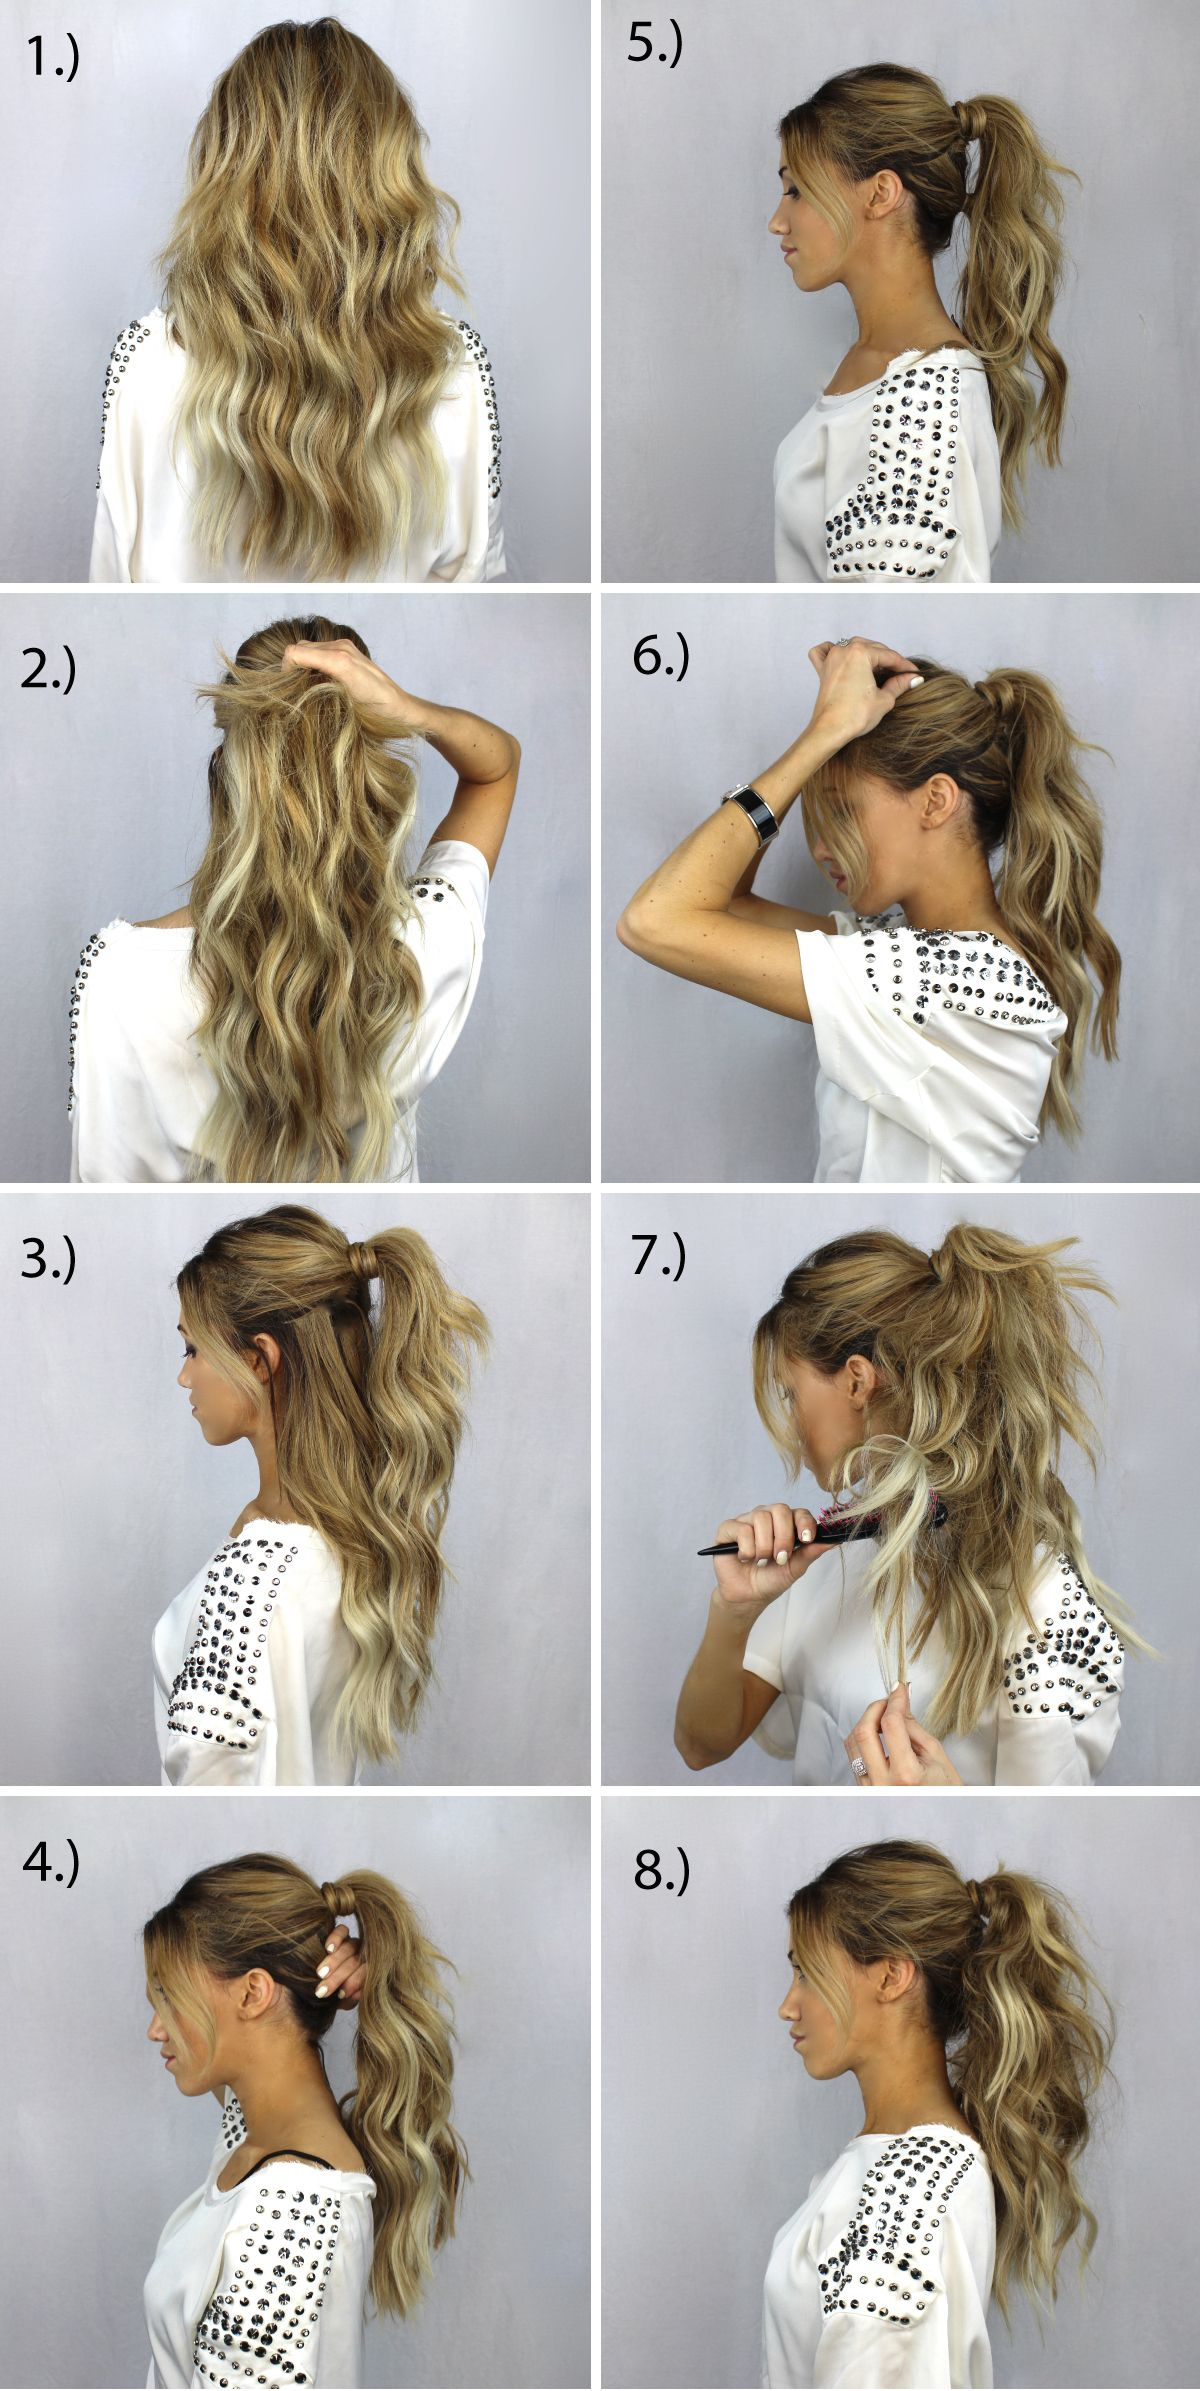 Fake your ponytail! | Kapsels | Pinterest | Ponytail, Hair style and ...